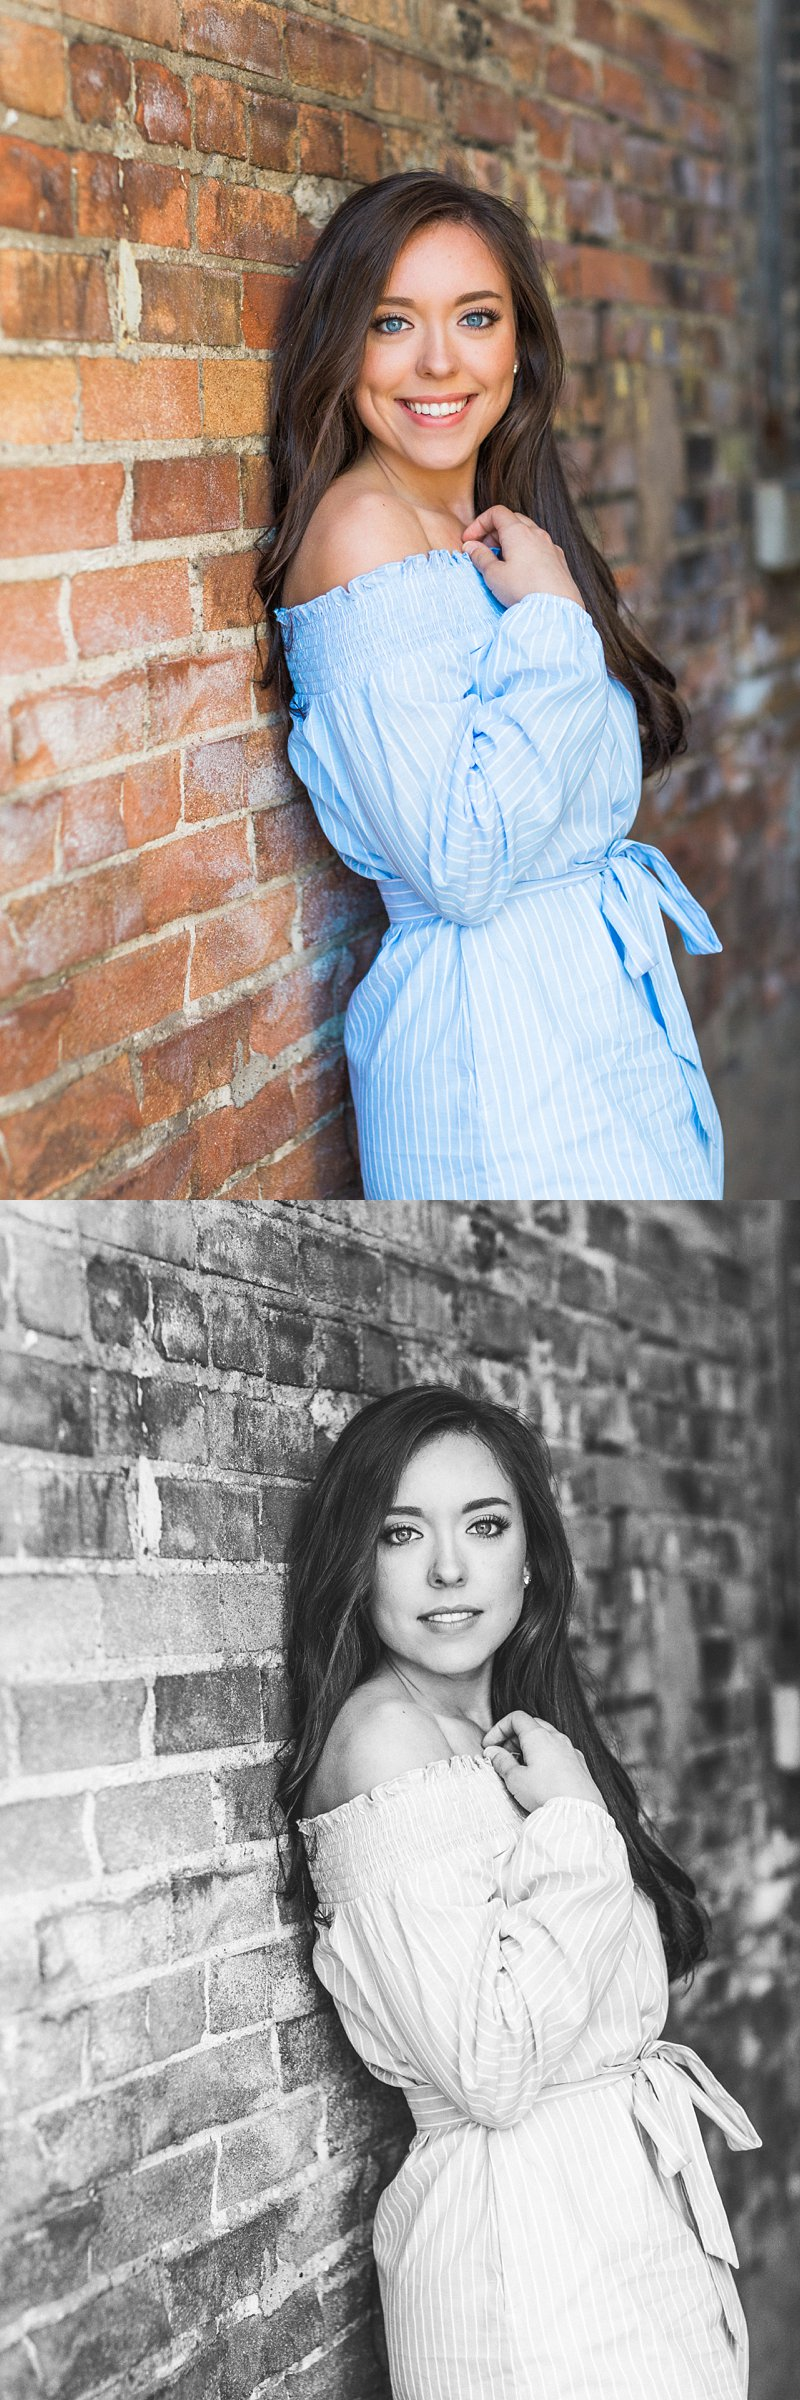 Green-Bay-Senior-Photographer-by-Jill-Hogan-13